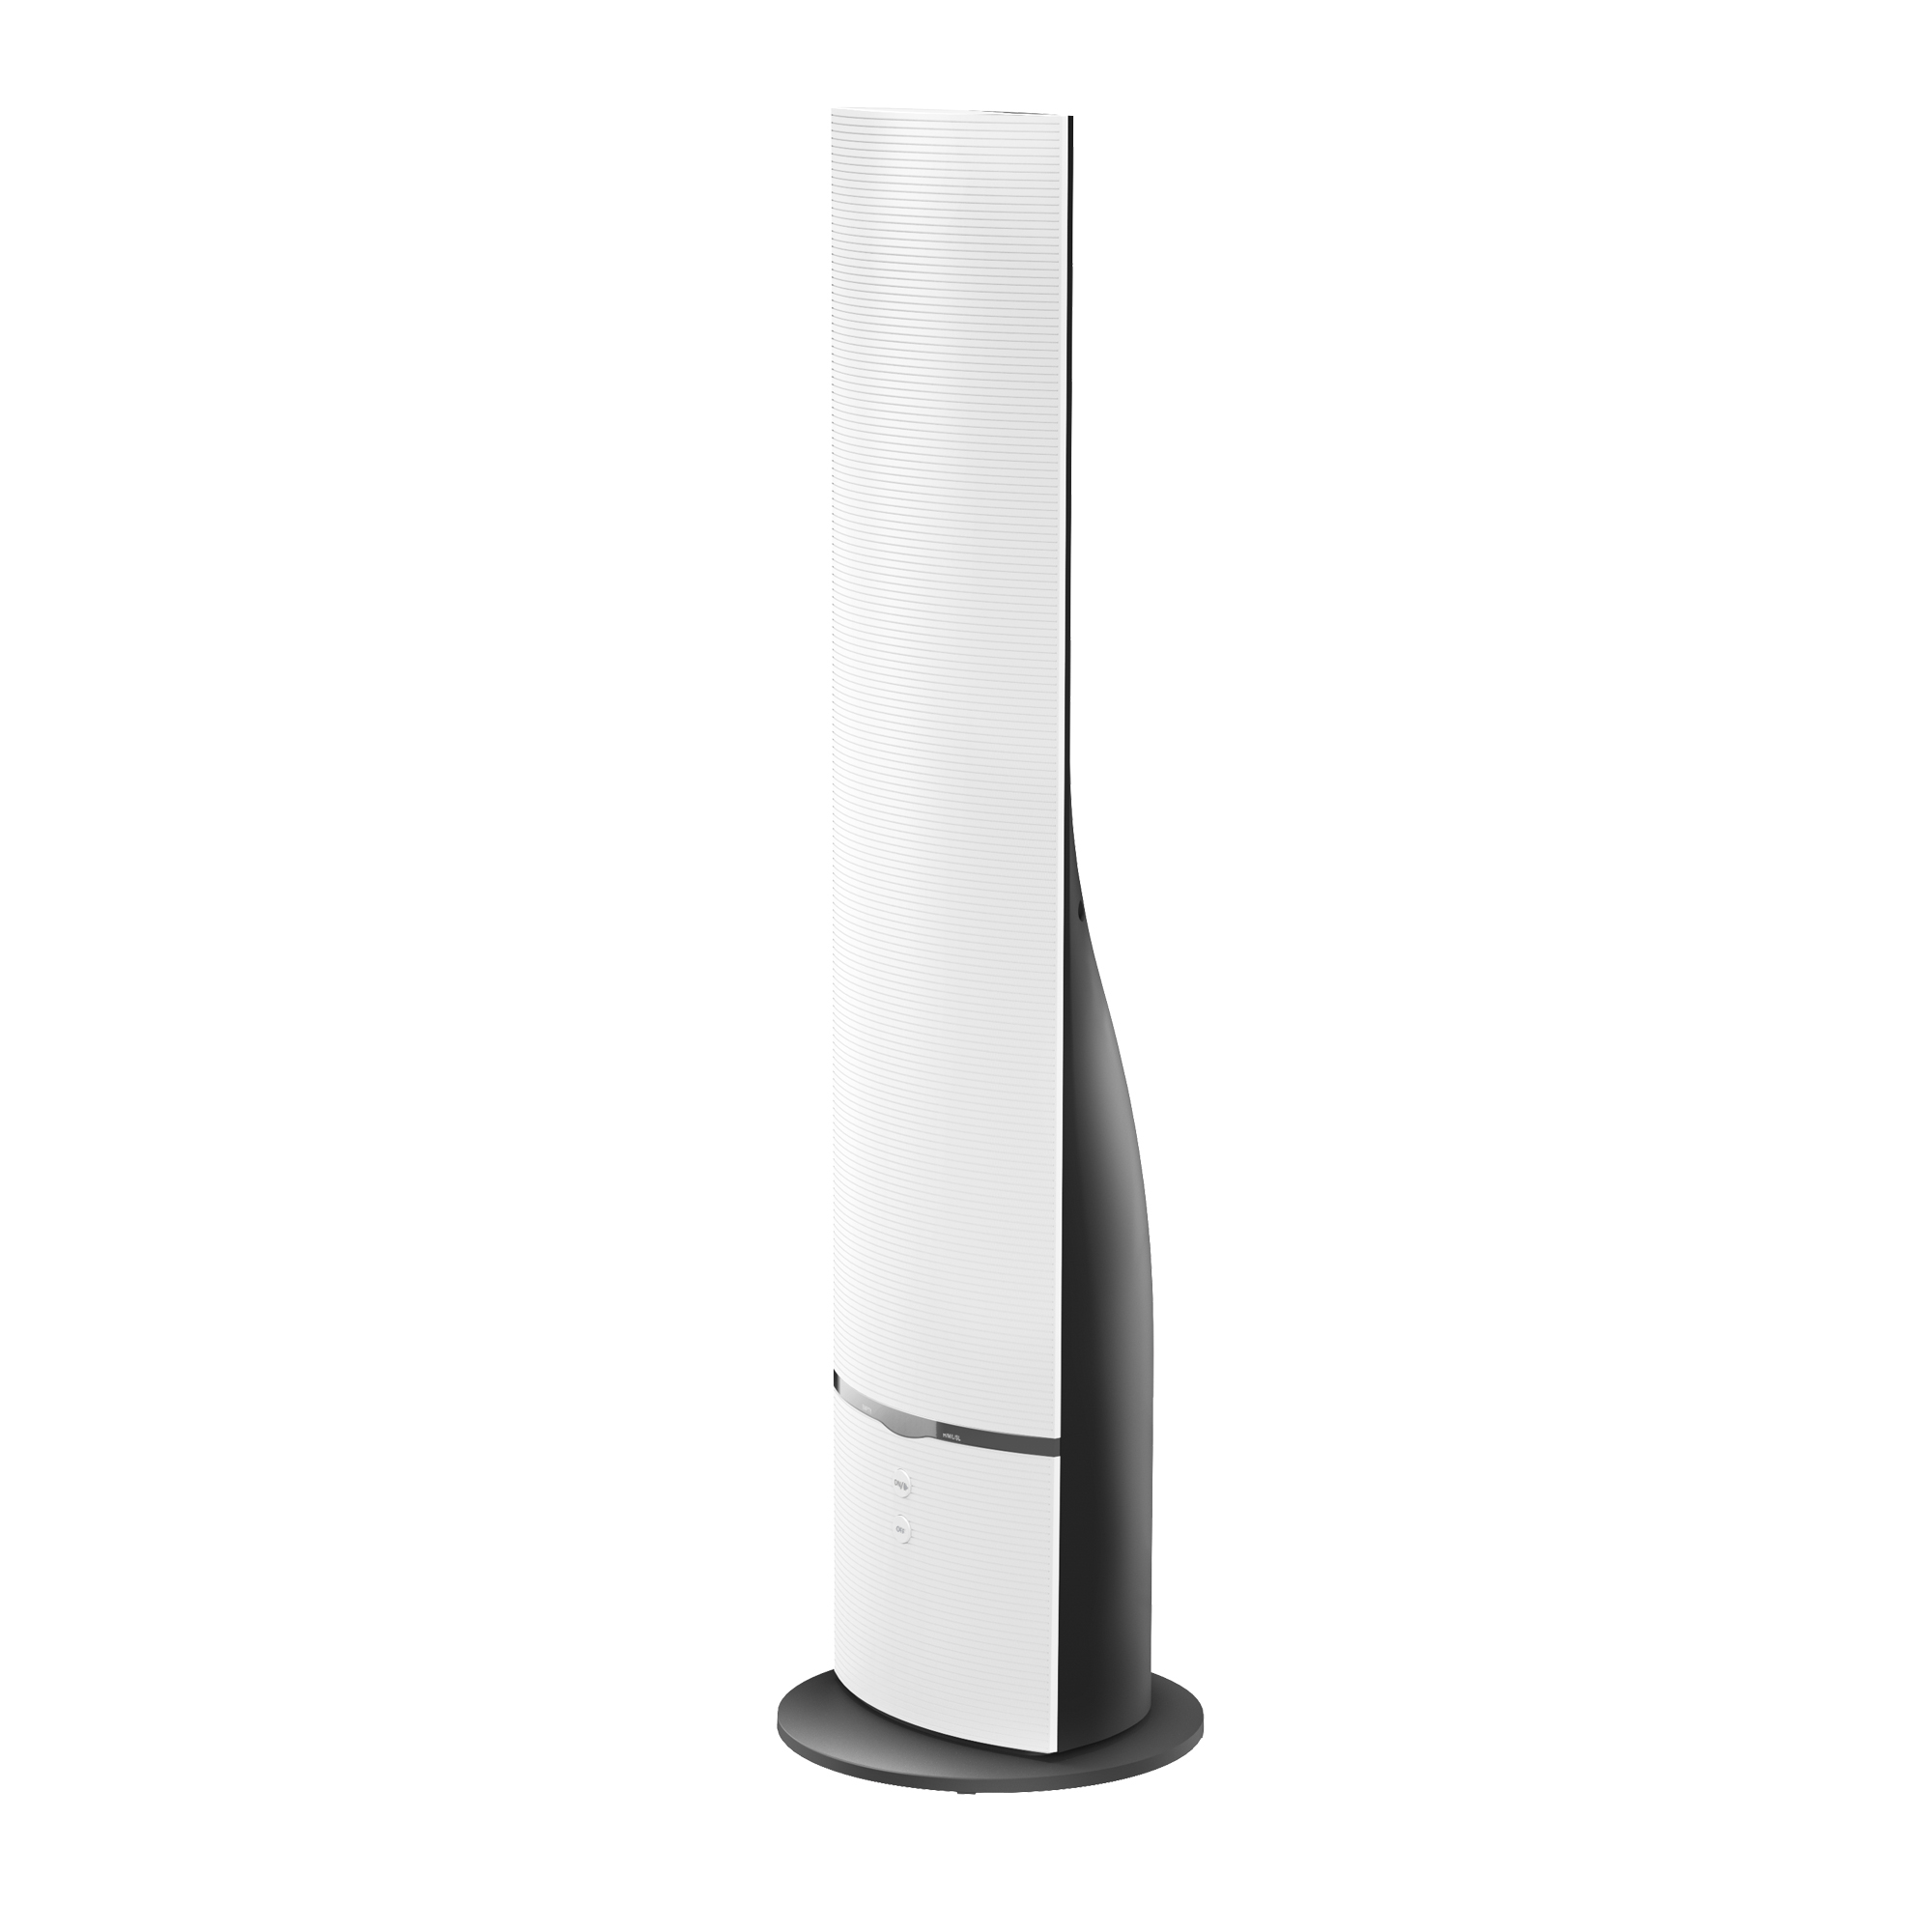 small resolution of h9 hybrid tower humidifier